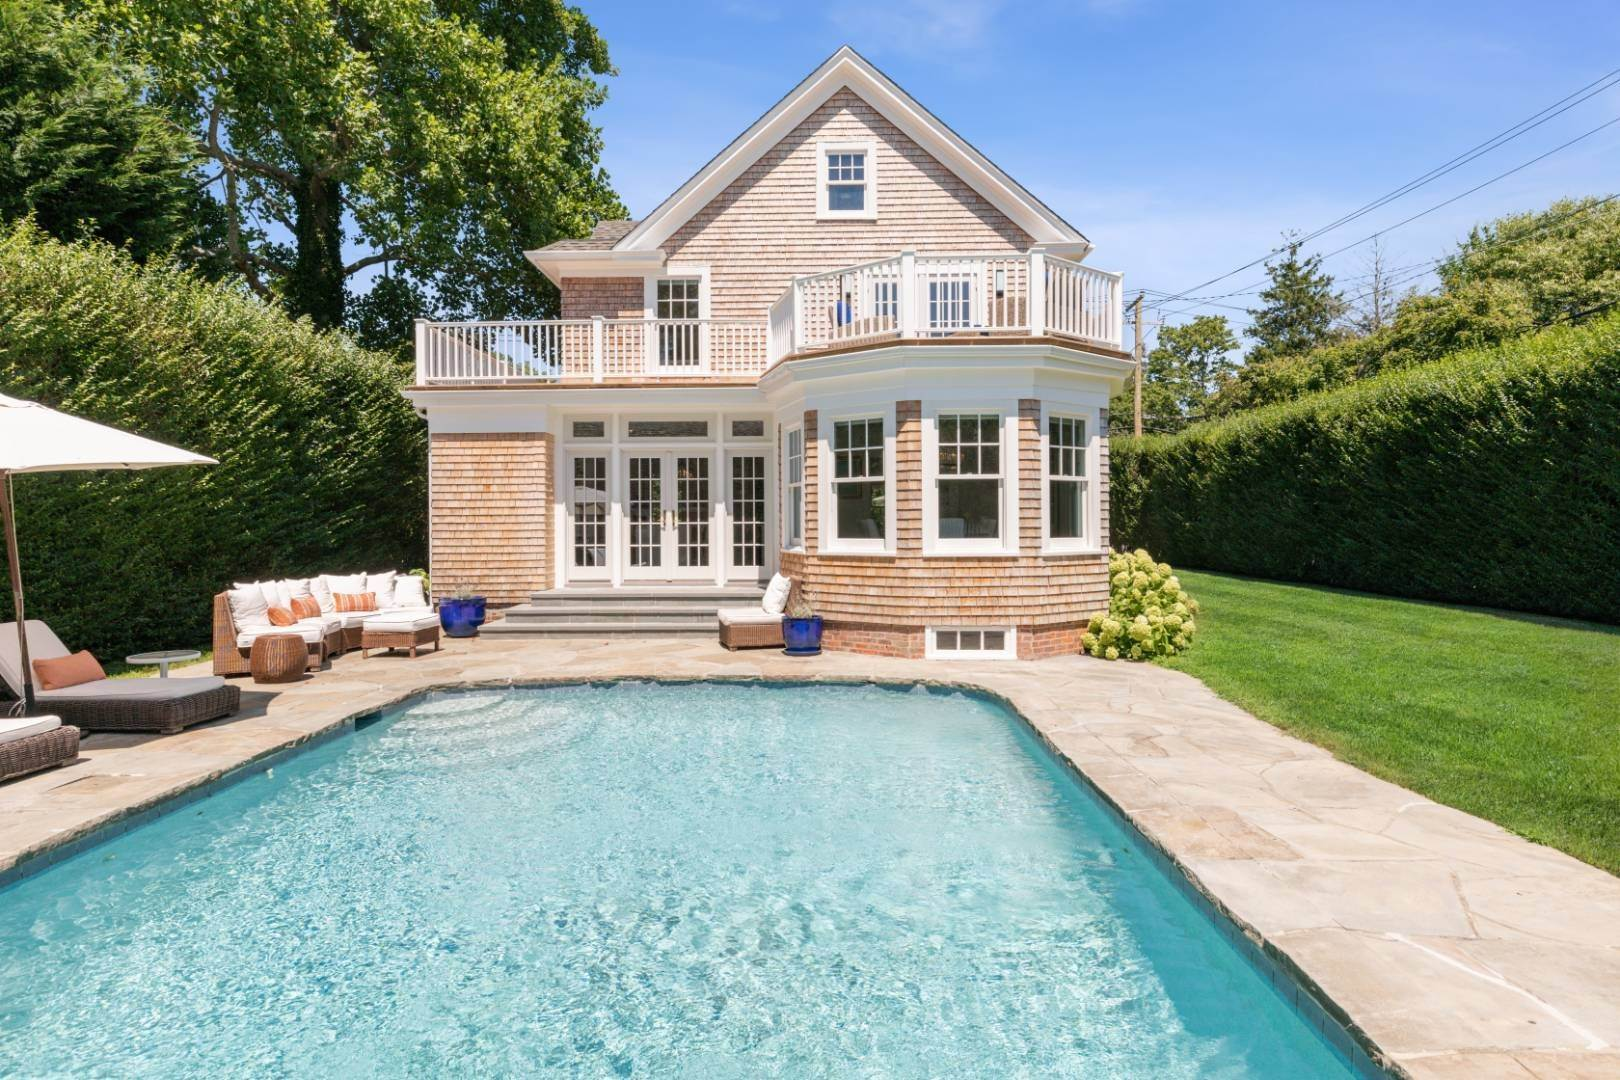 Single Family Home at Heart Of The Village-Close To The Ocean Southampton, NY 11968